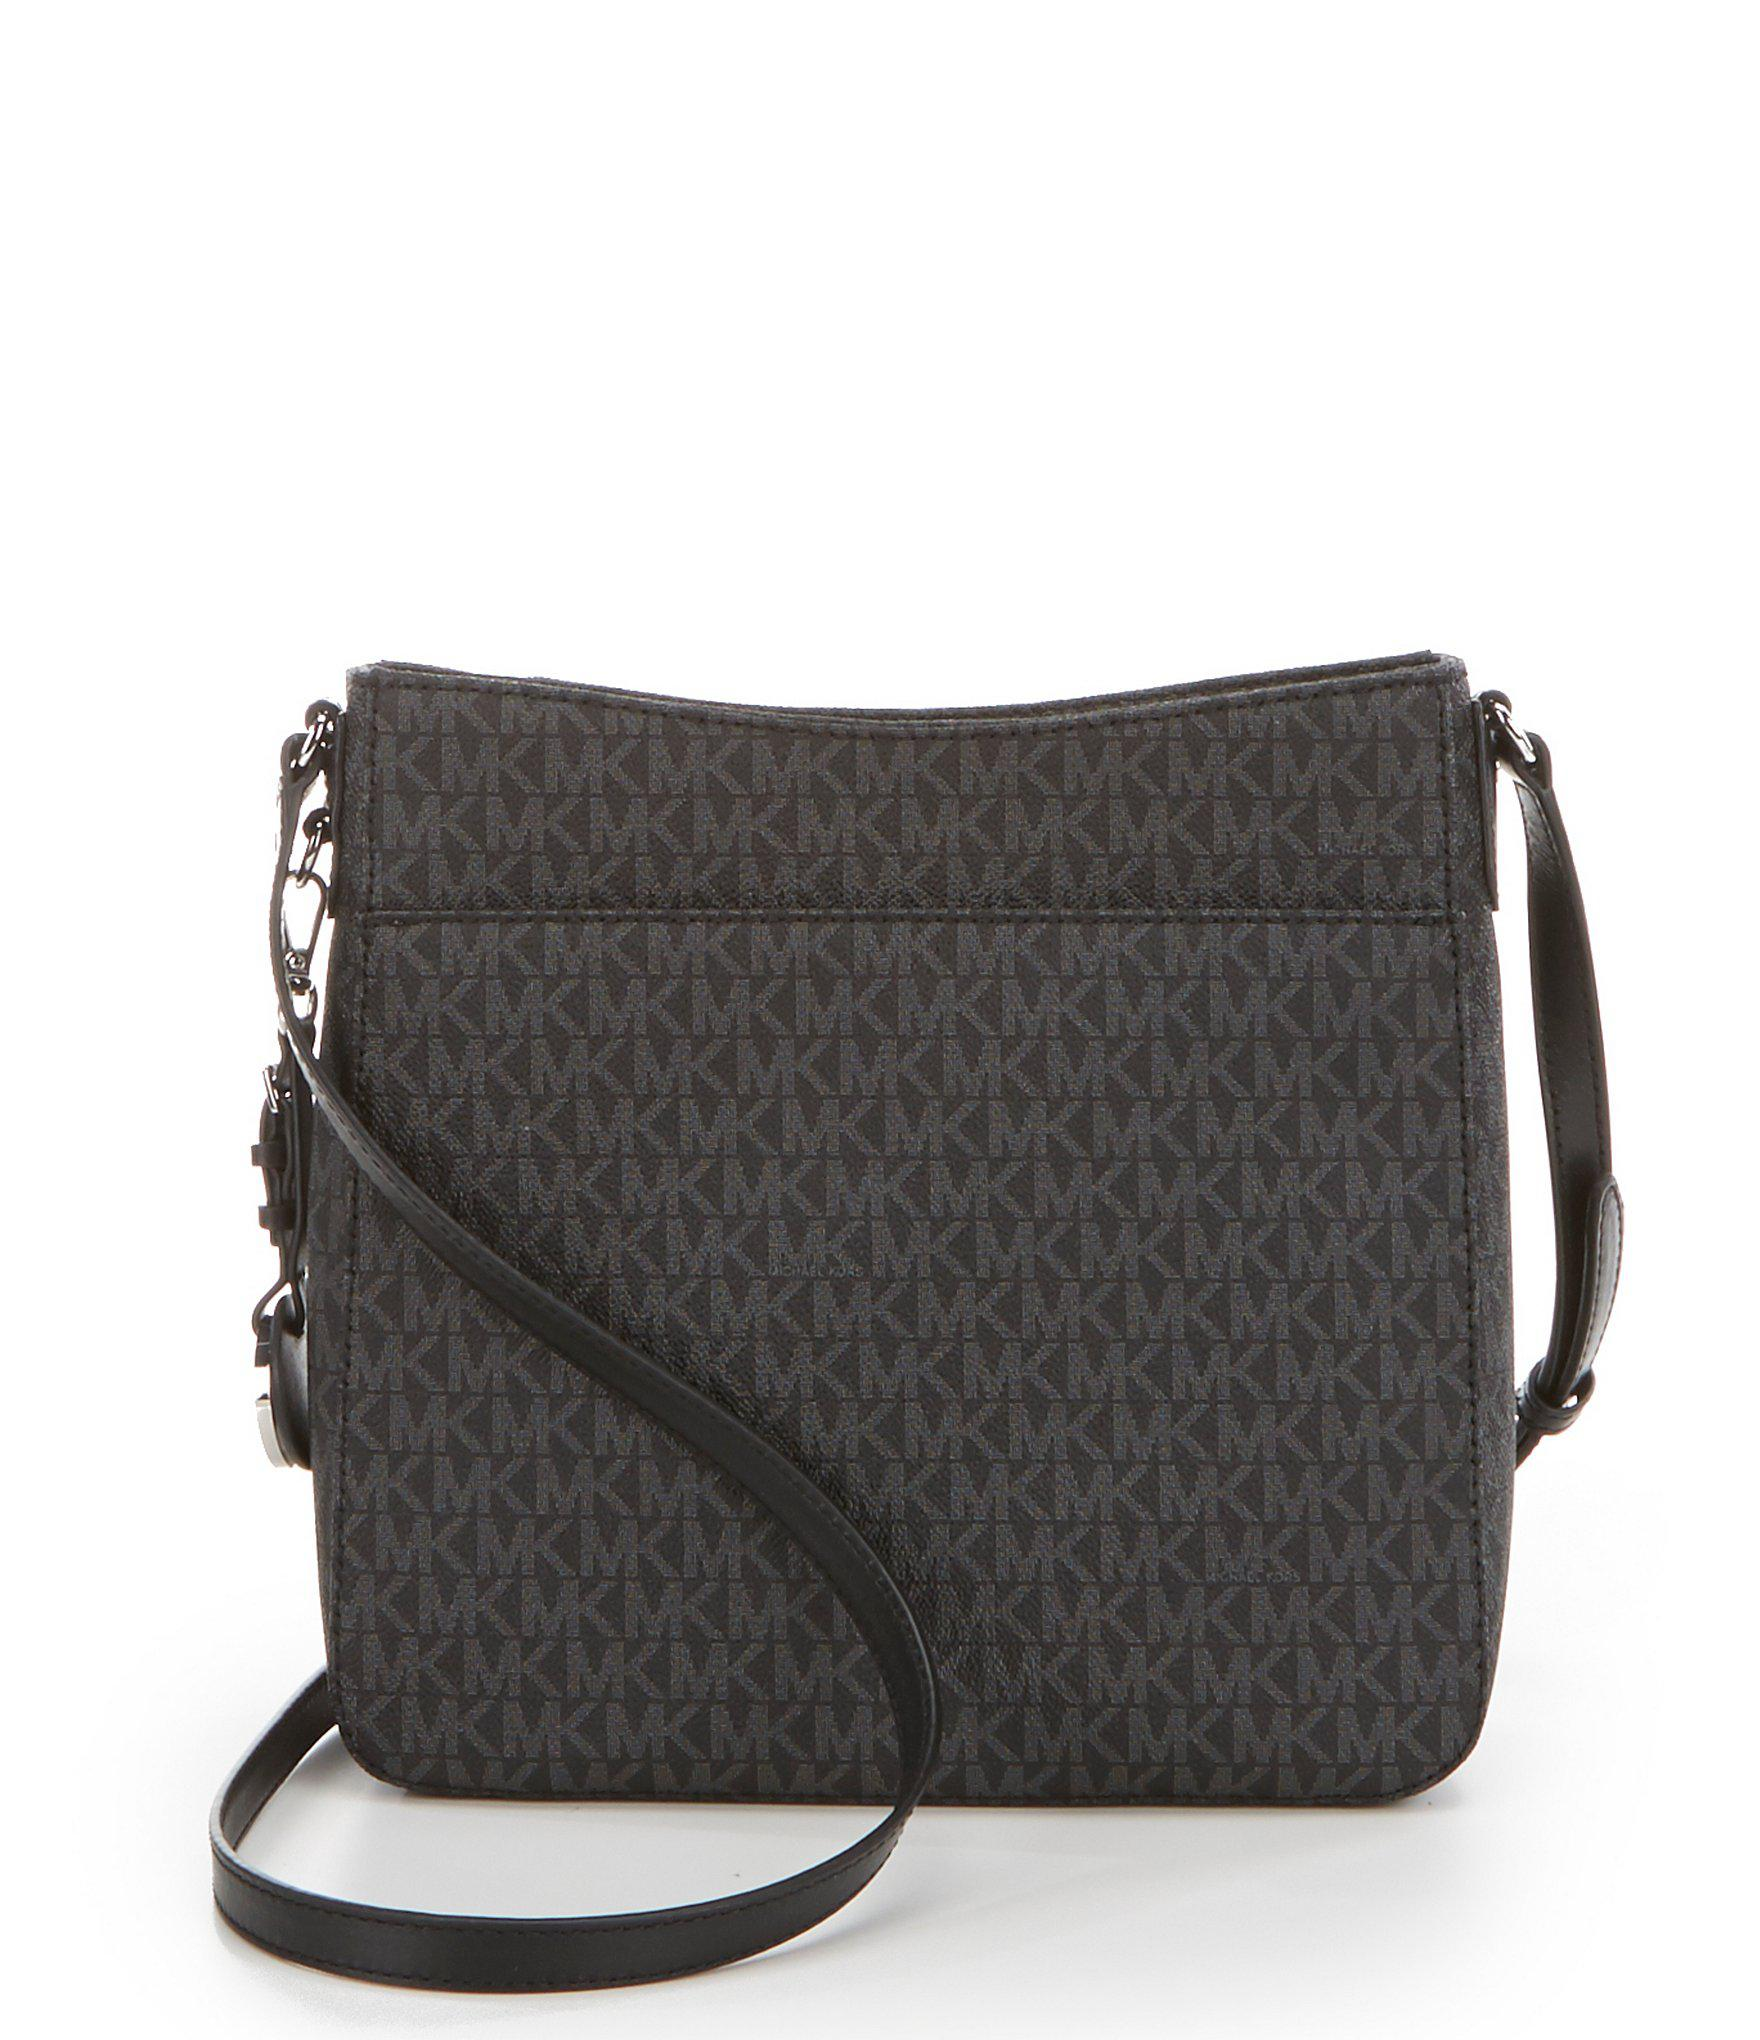 178e28a9e9f MICHAEL Michael Kors - Black Signature Small Cross-body Bag - Lyst. View  fullscreen